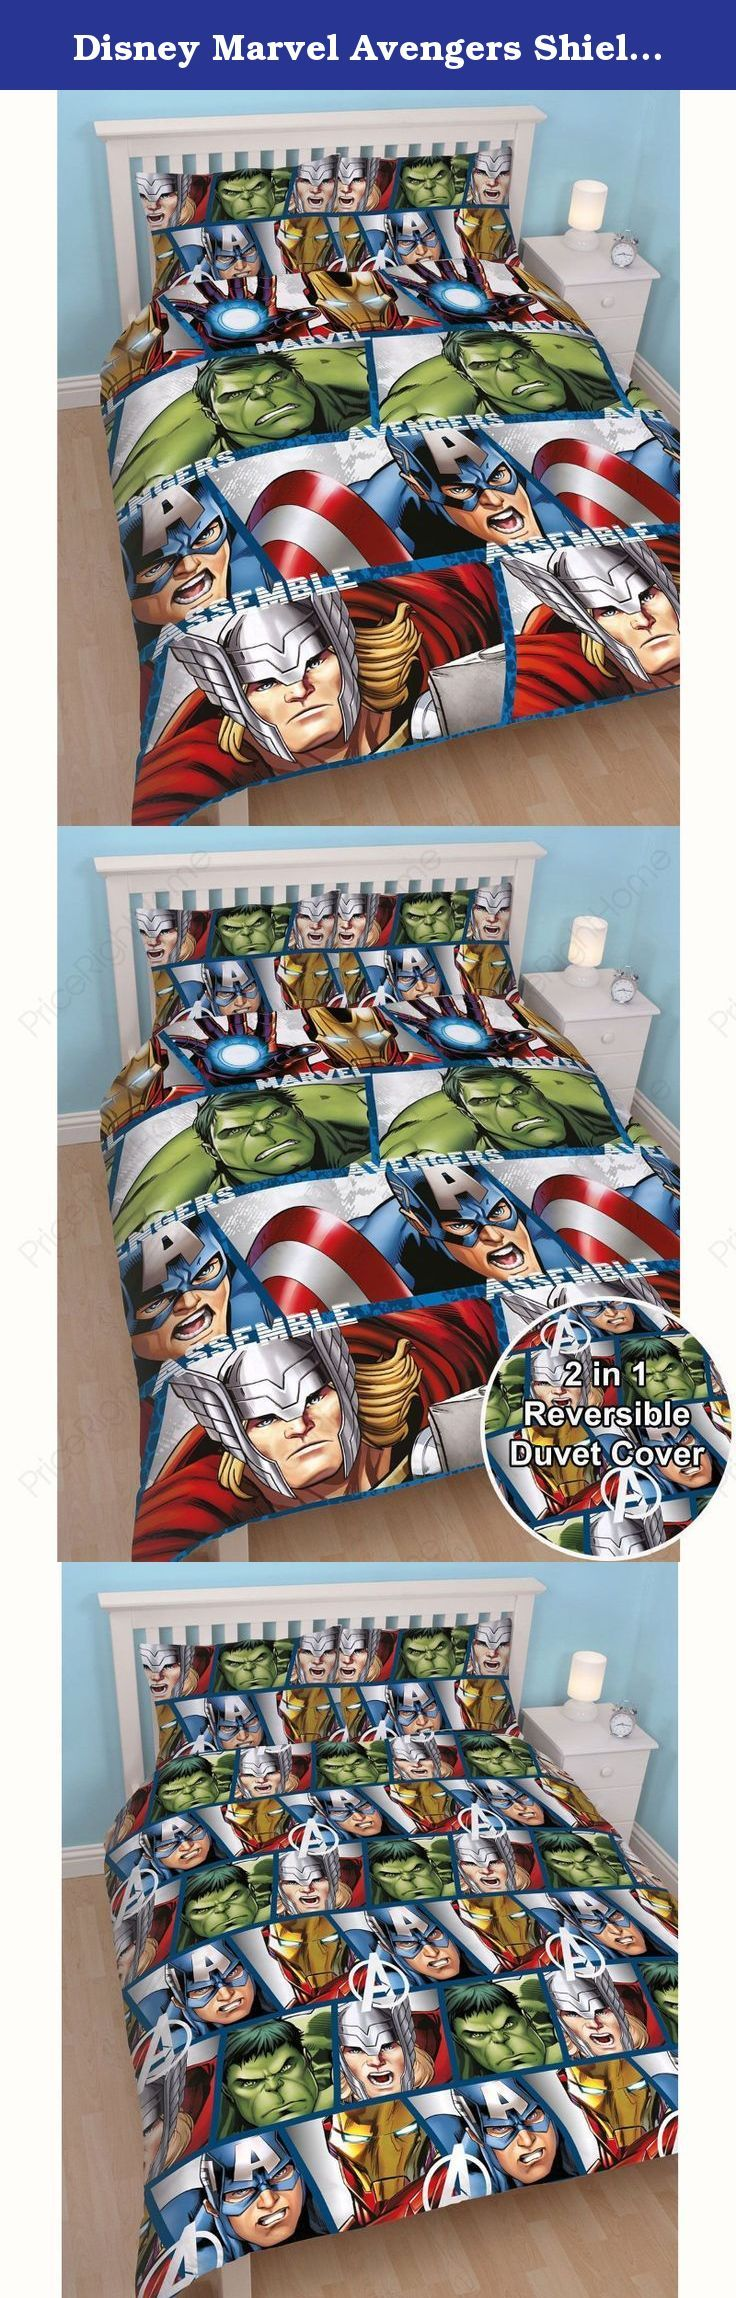 Disney Marvel Avengers Shield UK Double/US Full Duvet Set. This awesome double duvet cover set features Captain America, Thor, The Hulk and Iron Man and is bound to be a hit for superhero fans of all ages! This bedding set is made from easy care microfibre material and can be machine washed and tumble dried on a cool setting. Please note: Comforter and pillow not included.